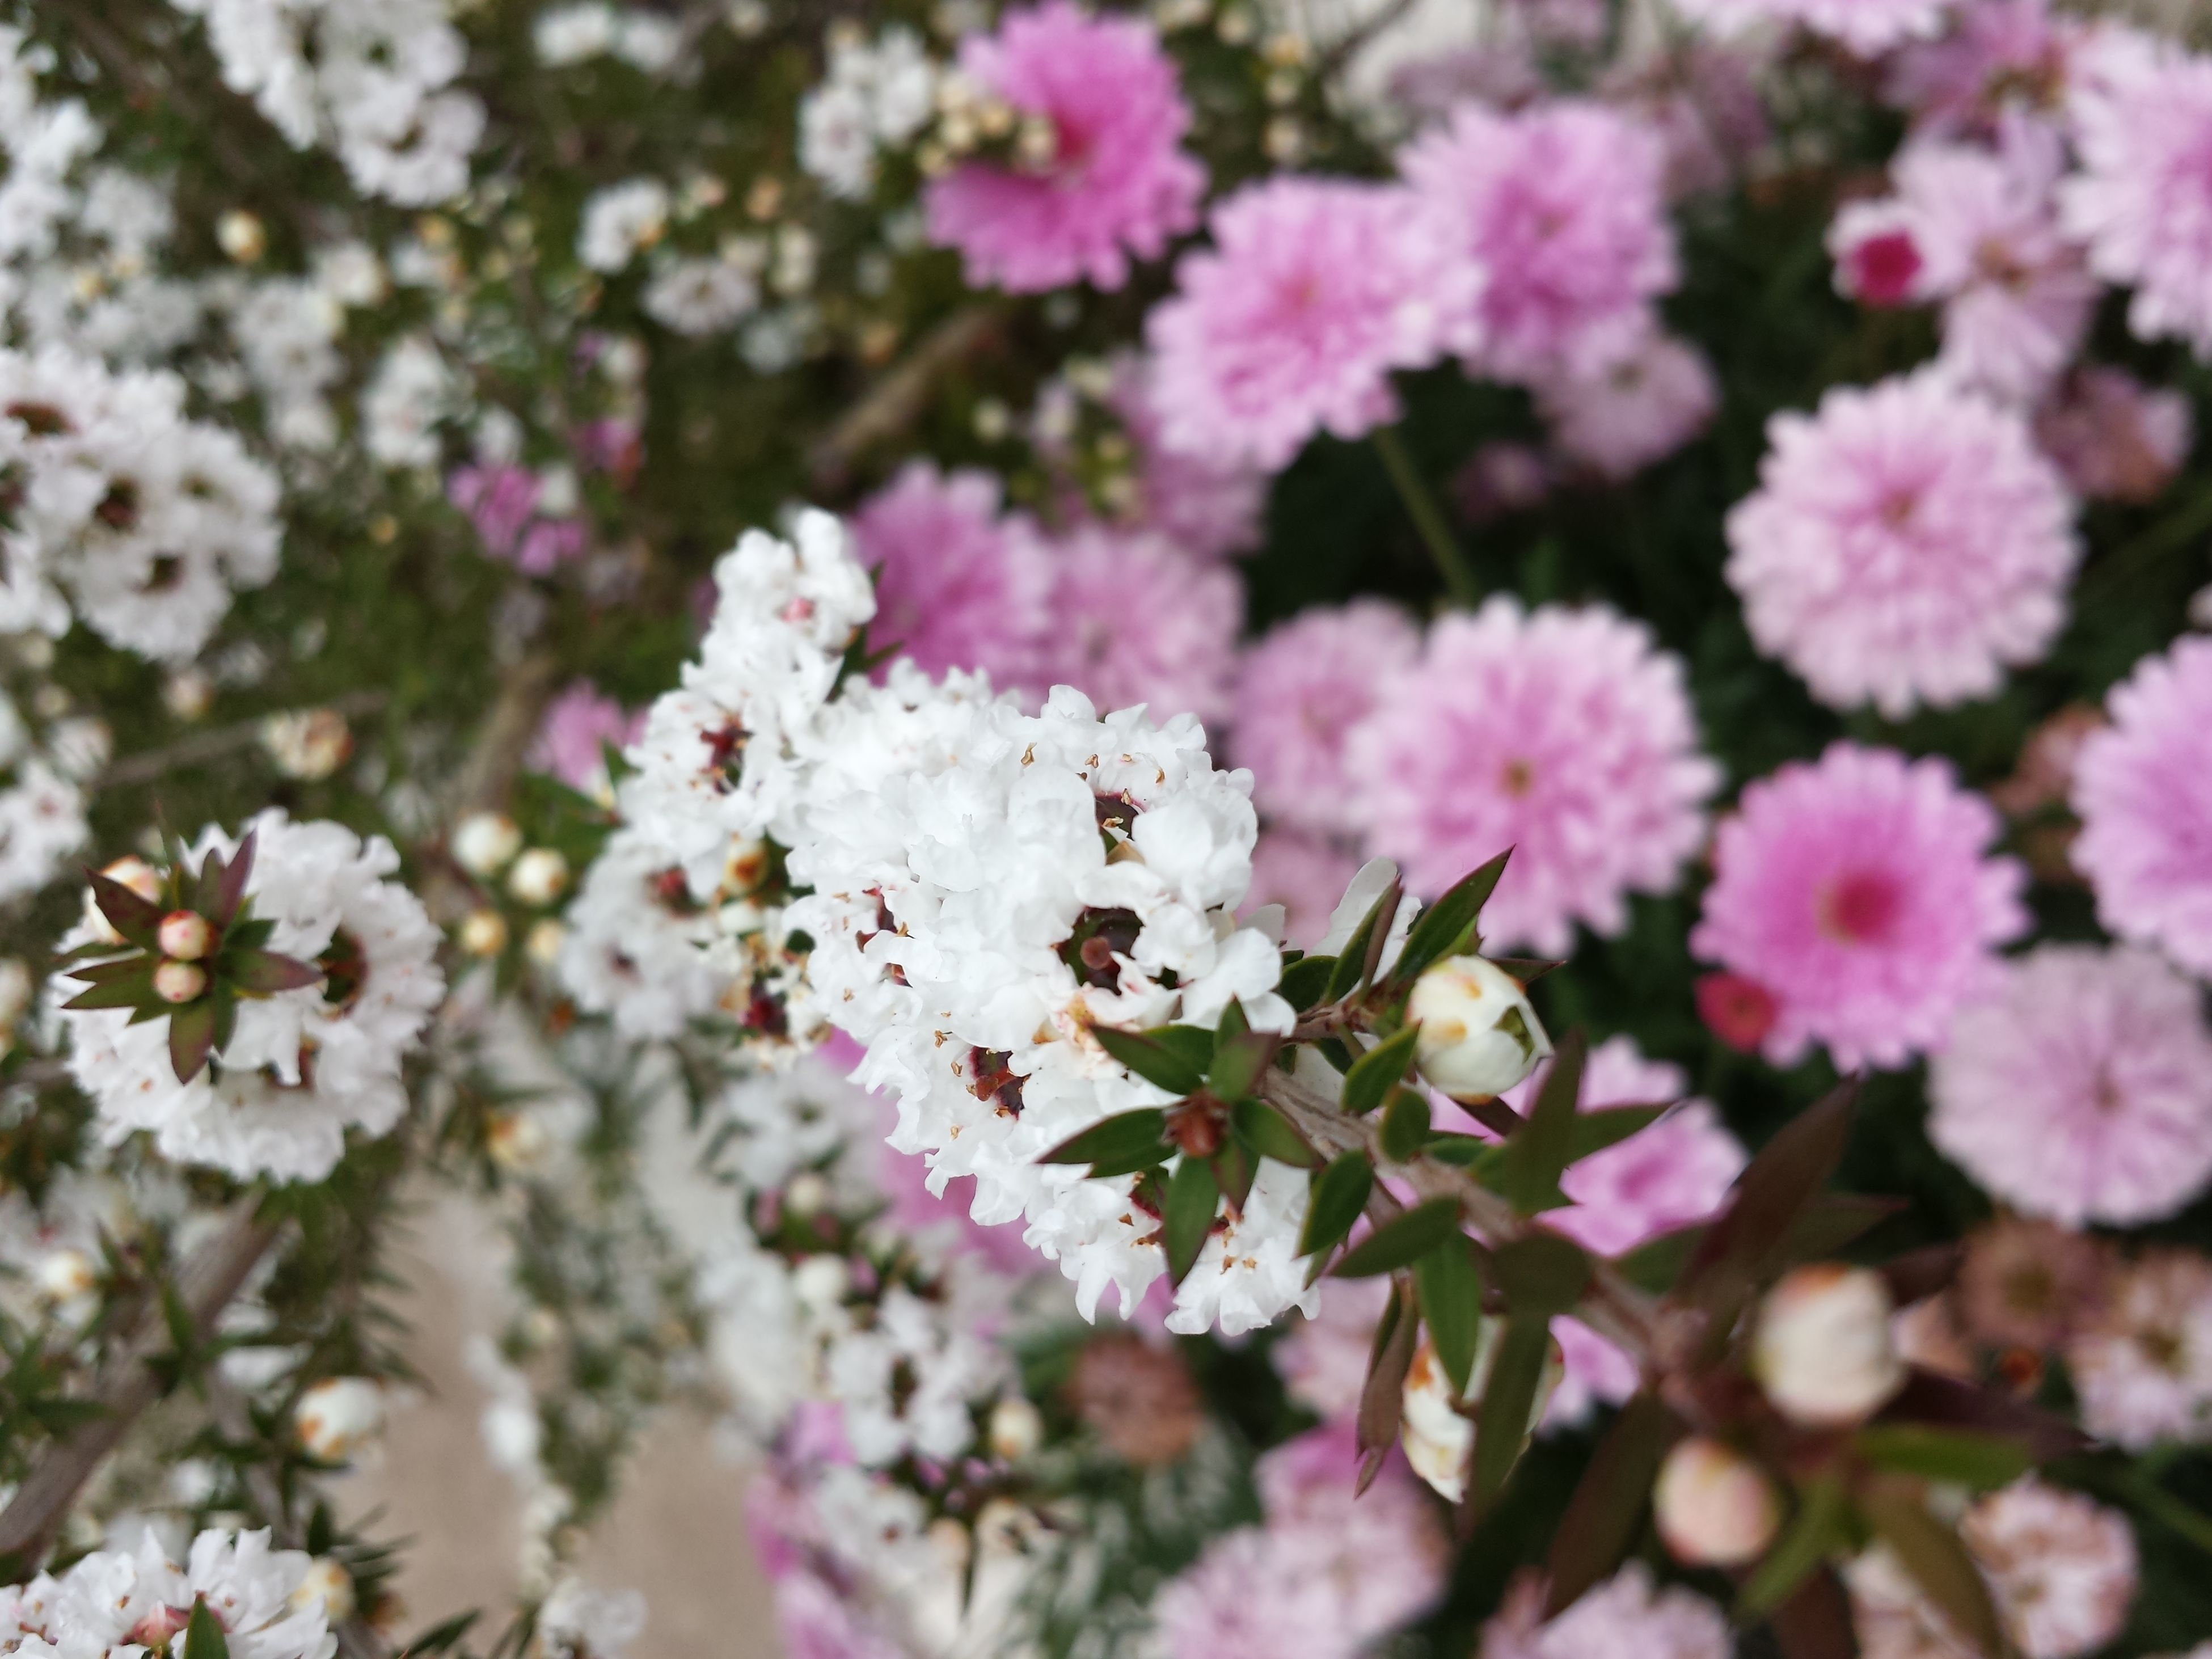 flower, freshness, fragility, growth, petal, beauty in nature, pink color, nature, blooming, flower head, focus on foreground, close-up, in bloom, plant, blossom, park - man made space, outdoors, selective focus, day, white color